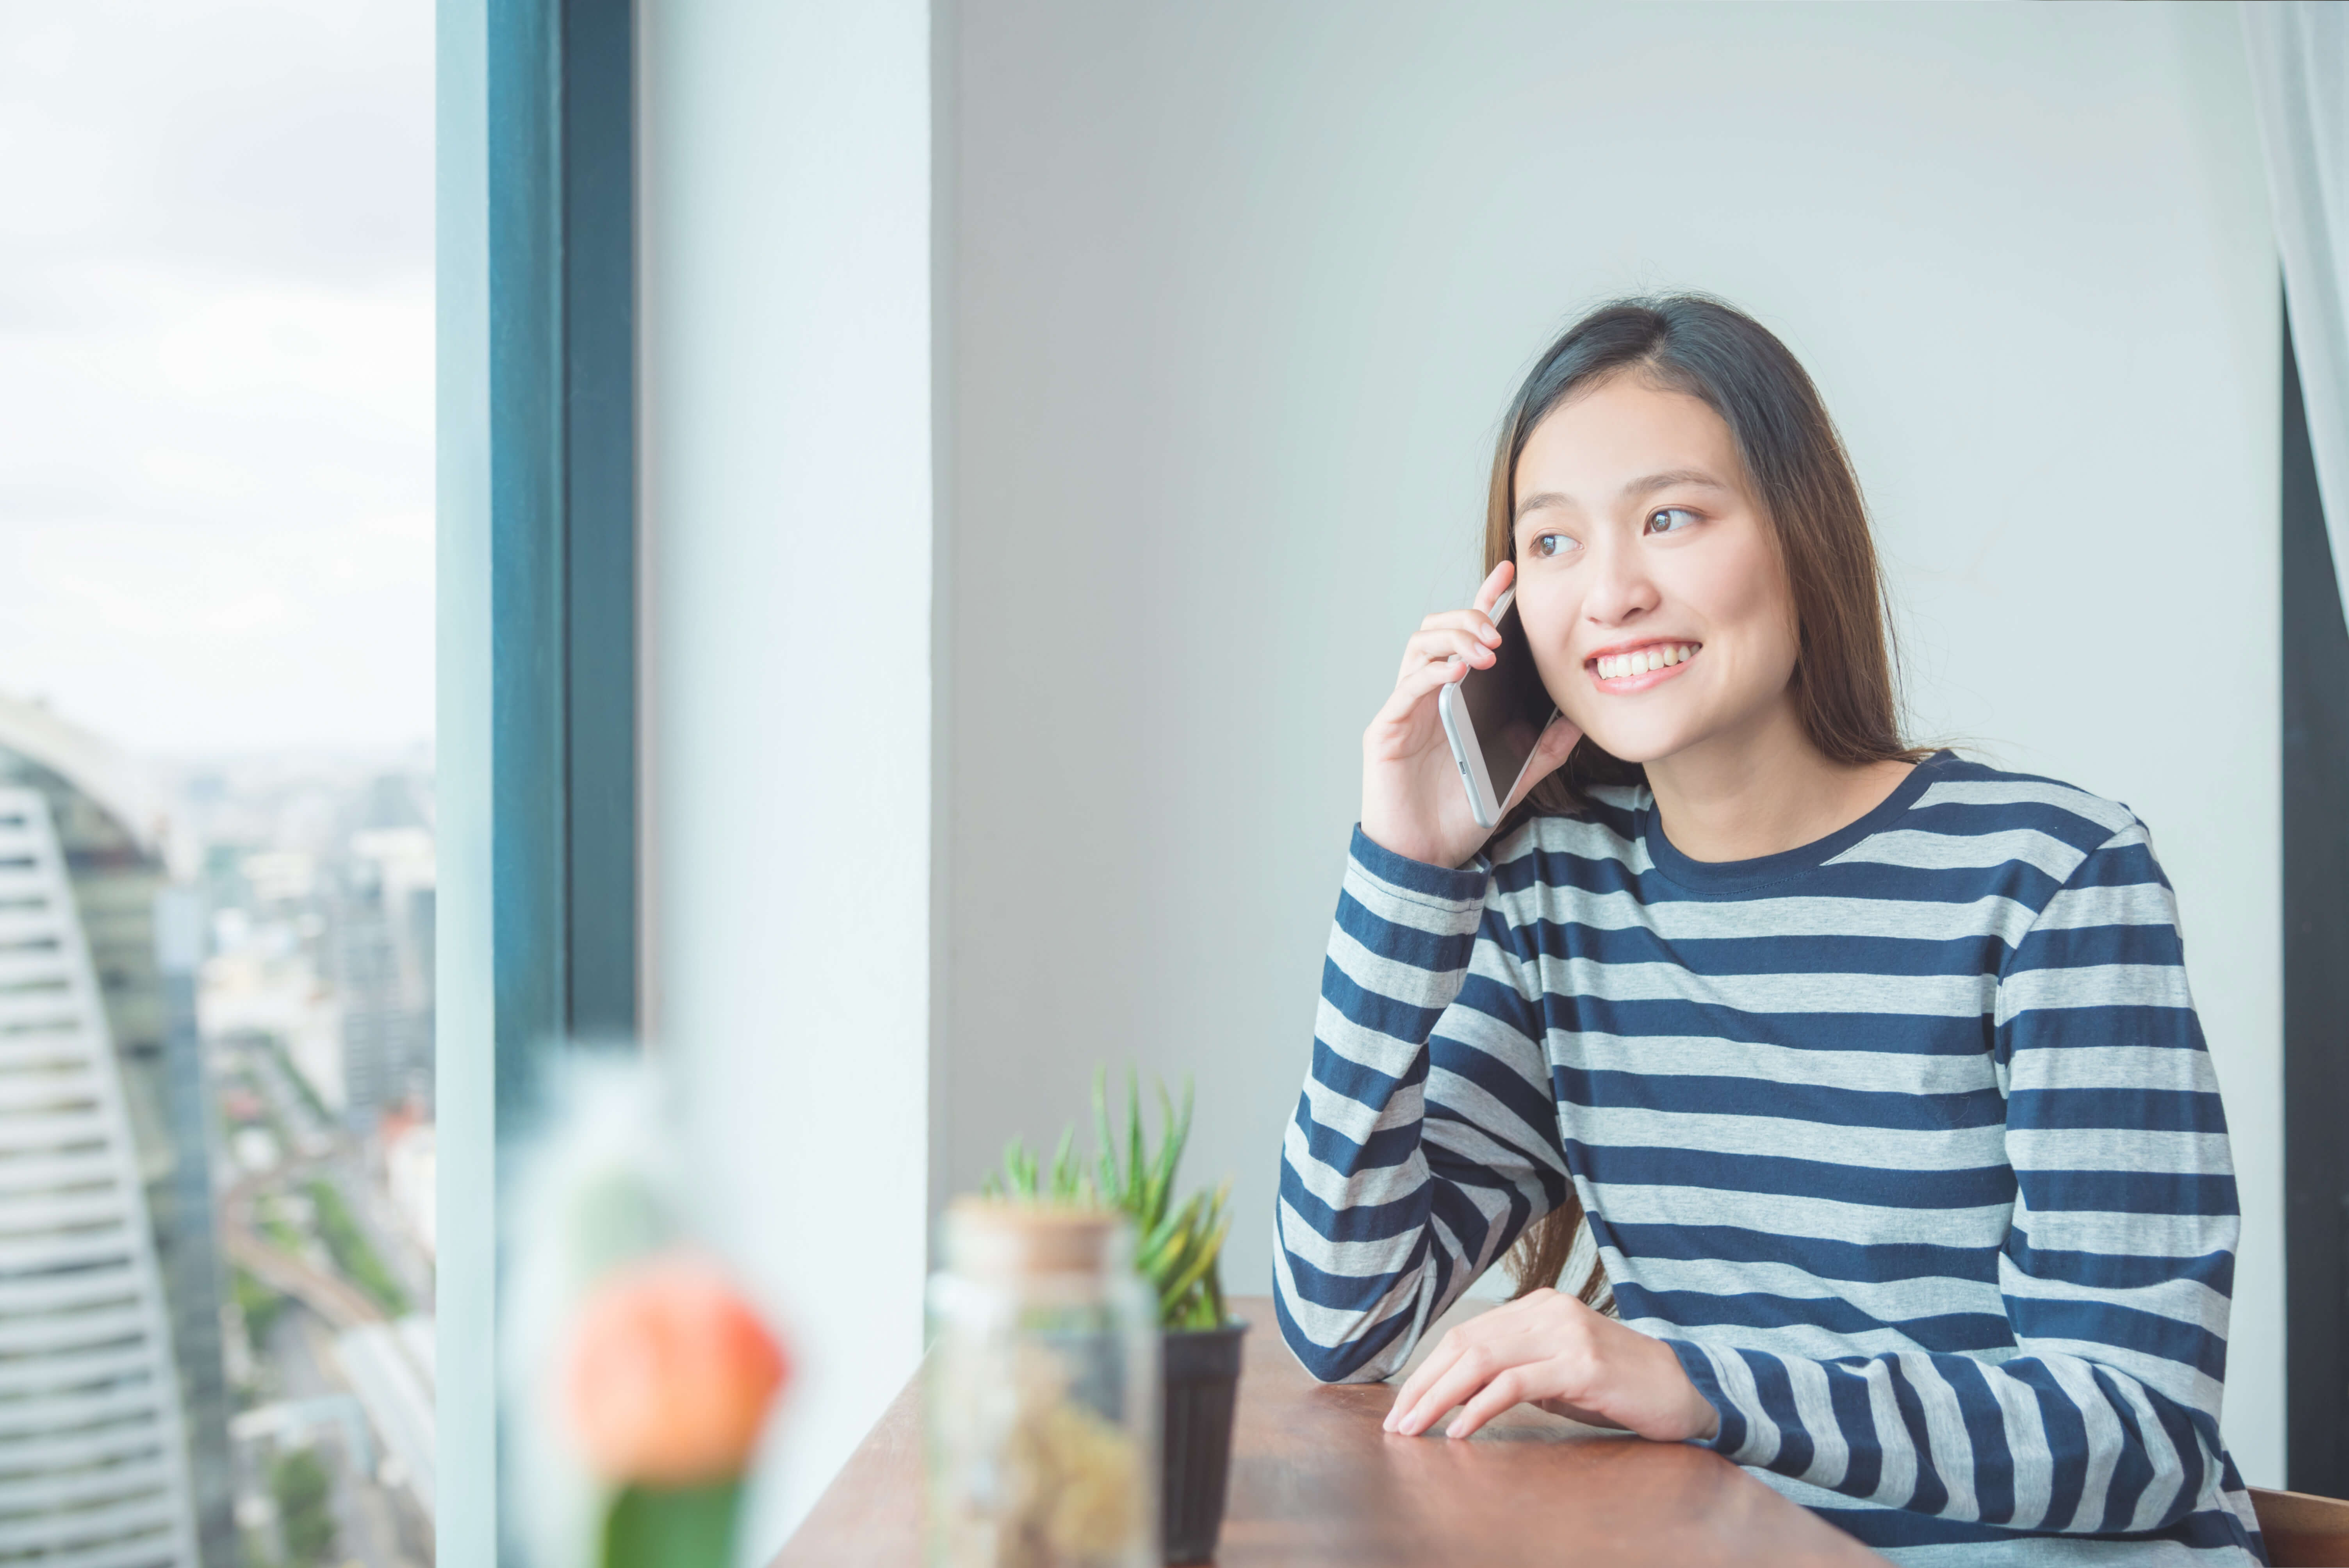 Globe Telecom reduces churn and account delinquency with multi-channel customer engagement